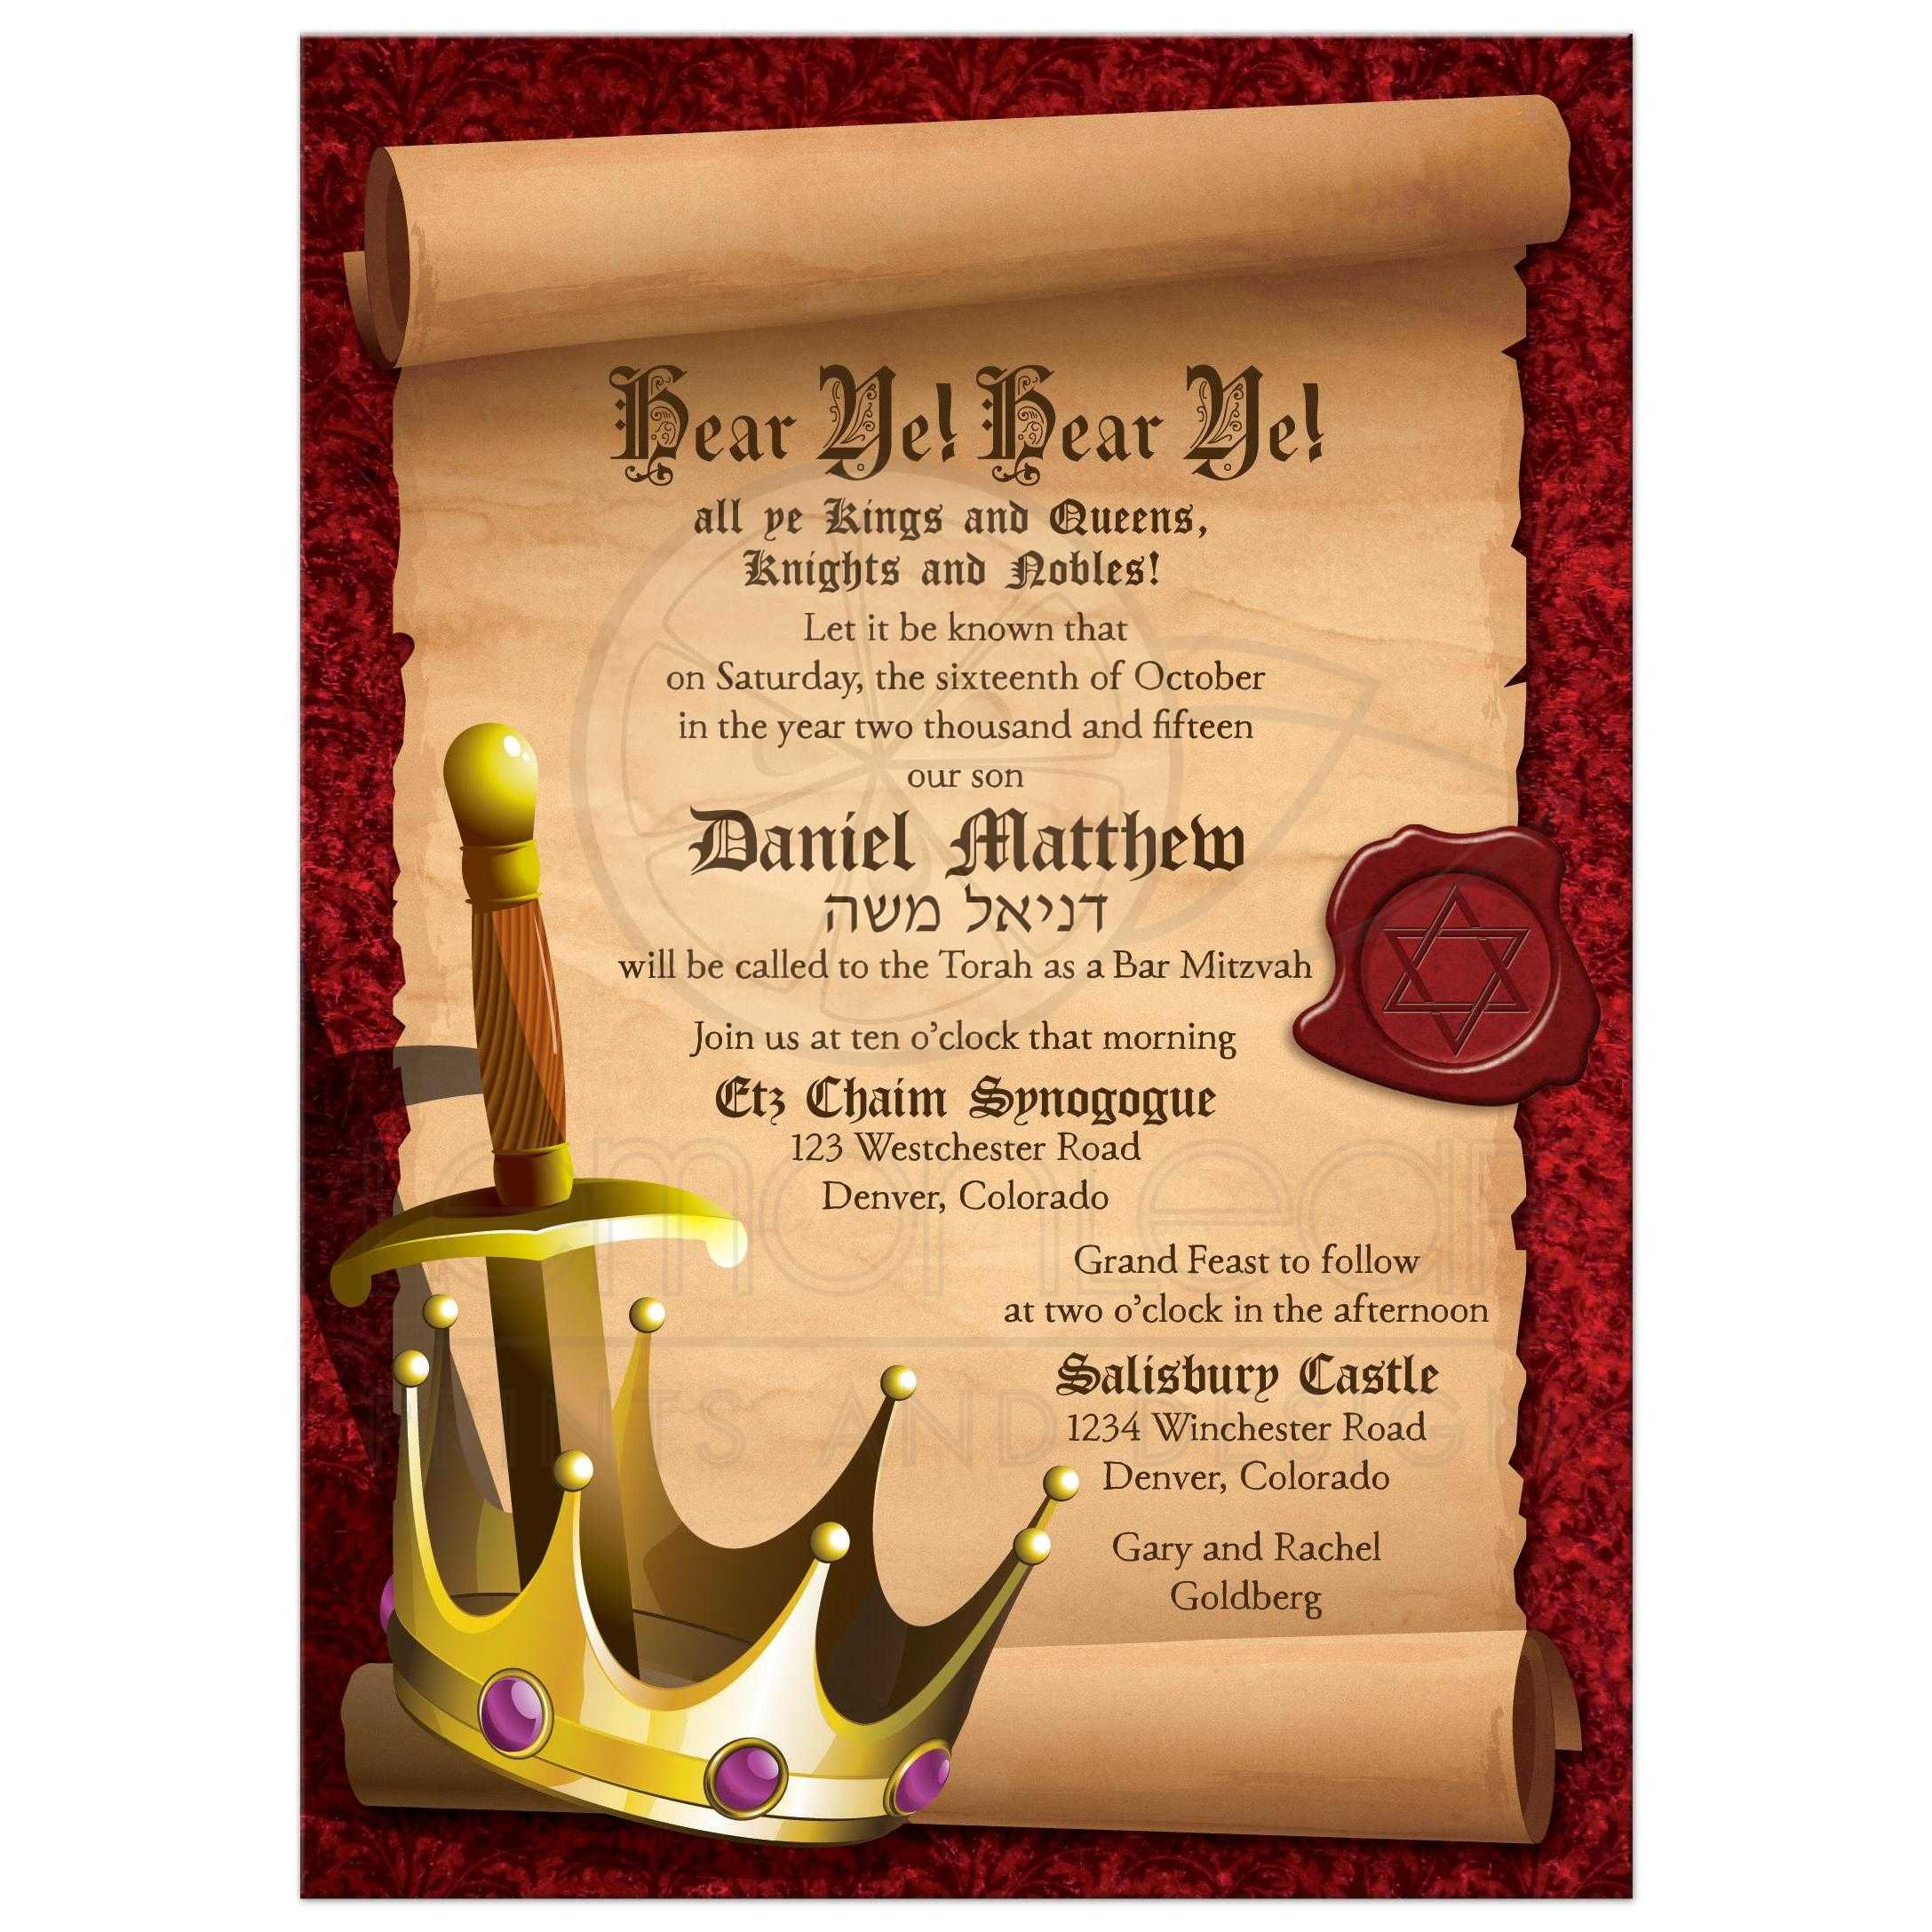 Bar mitzvah and bat mitzvah invitation wording ideas fantasy knight bar mitzvah invitation medieval m4hsunfo